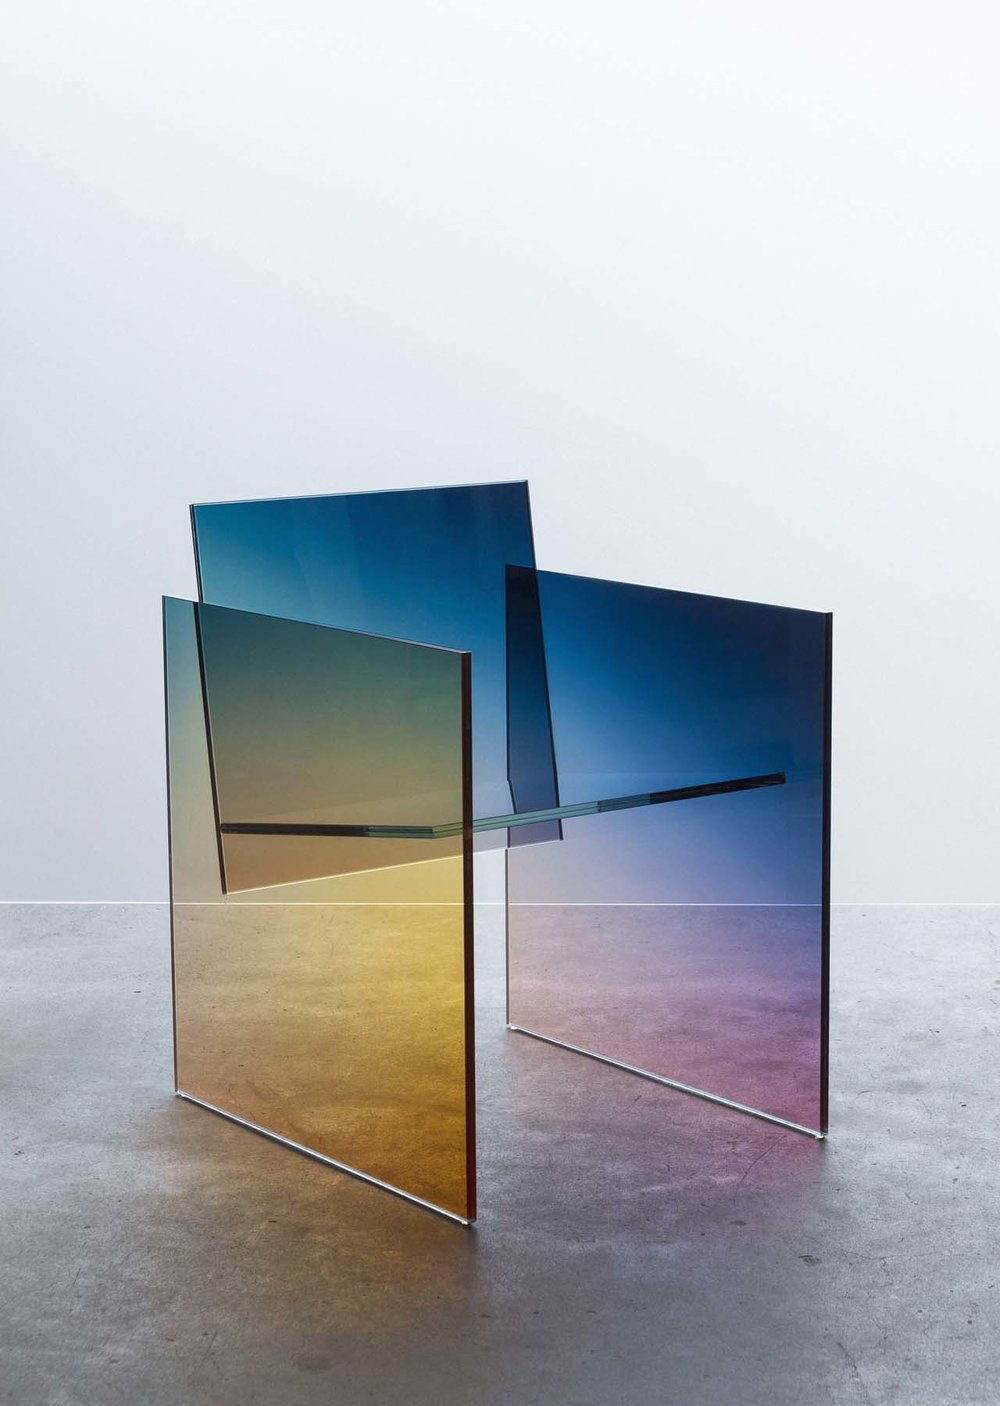 germans ermics ombre glass chair